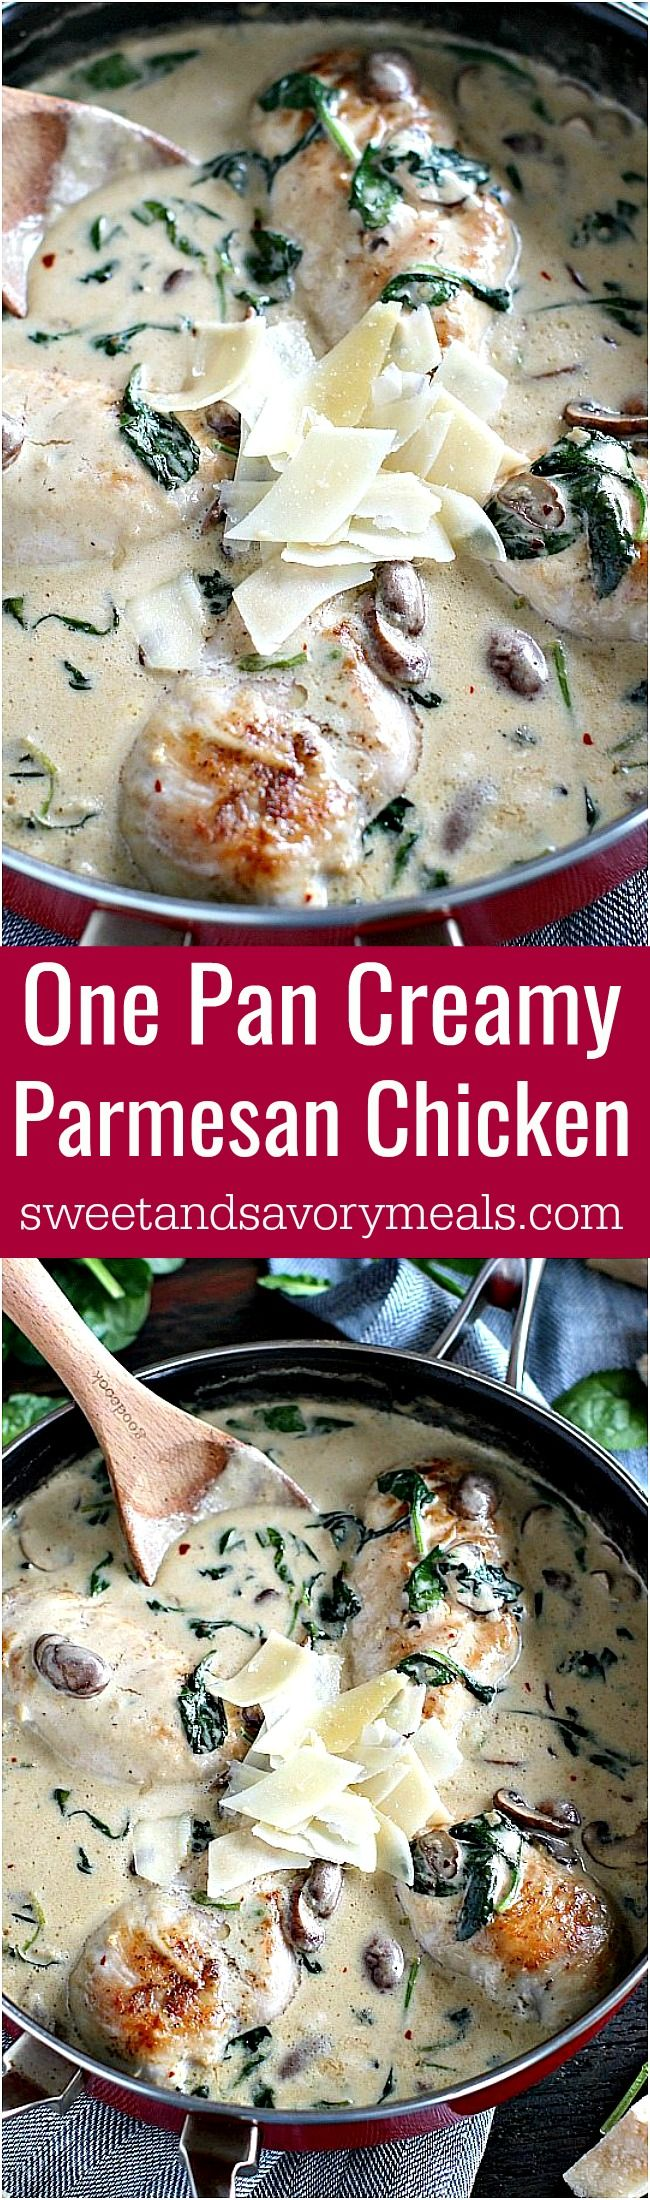 Creamy Parmesan Mushroom Chicken is made easy in One Pan and is ready in 30 minutes.   Omit wine